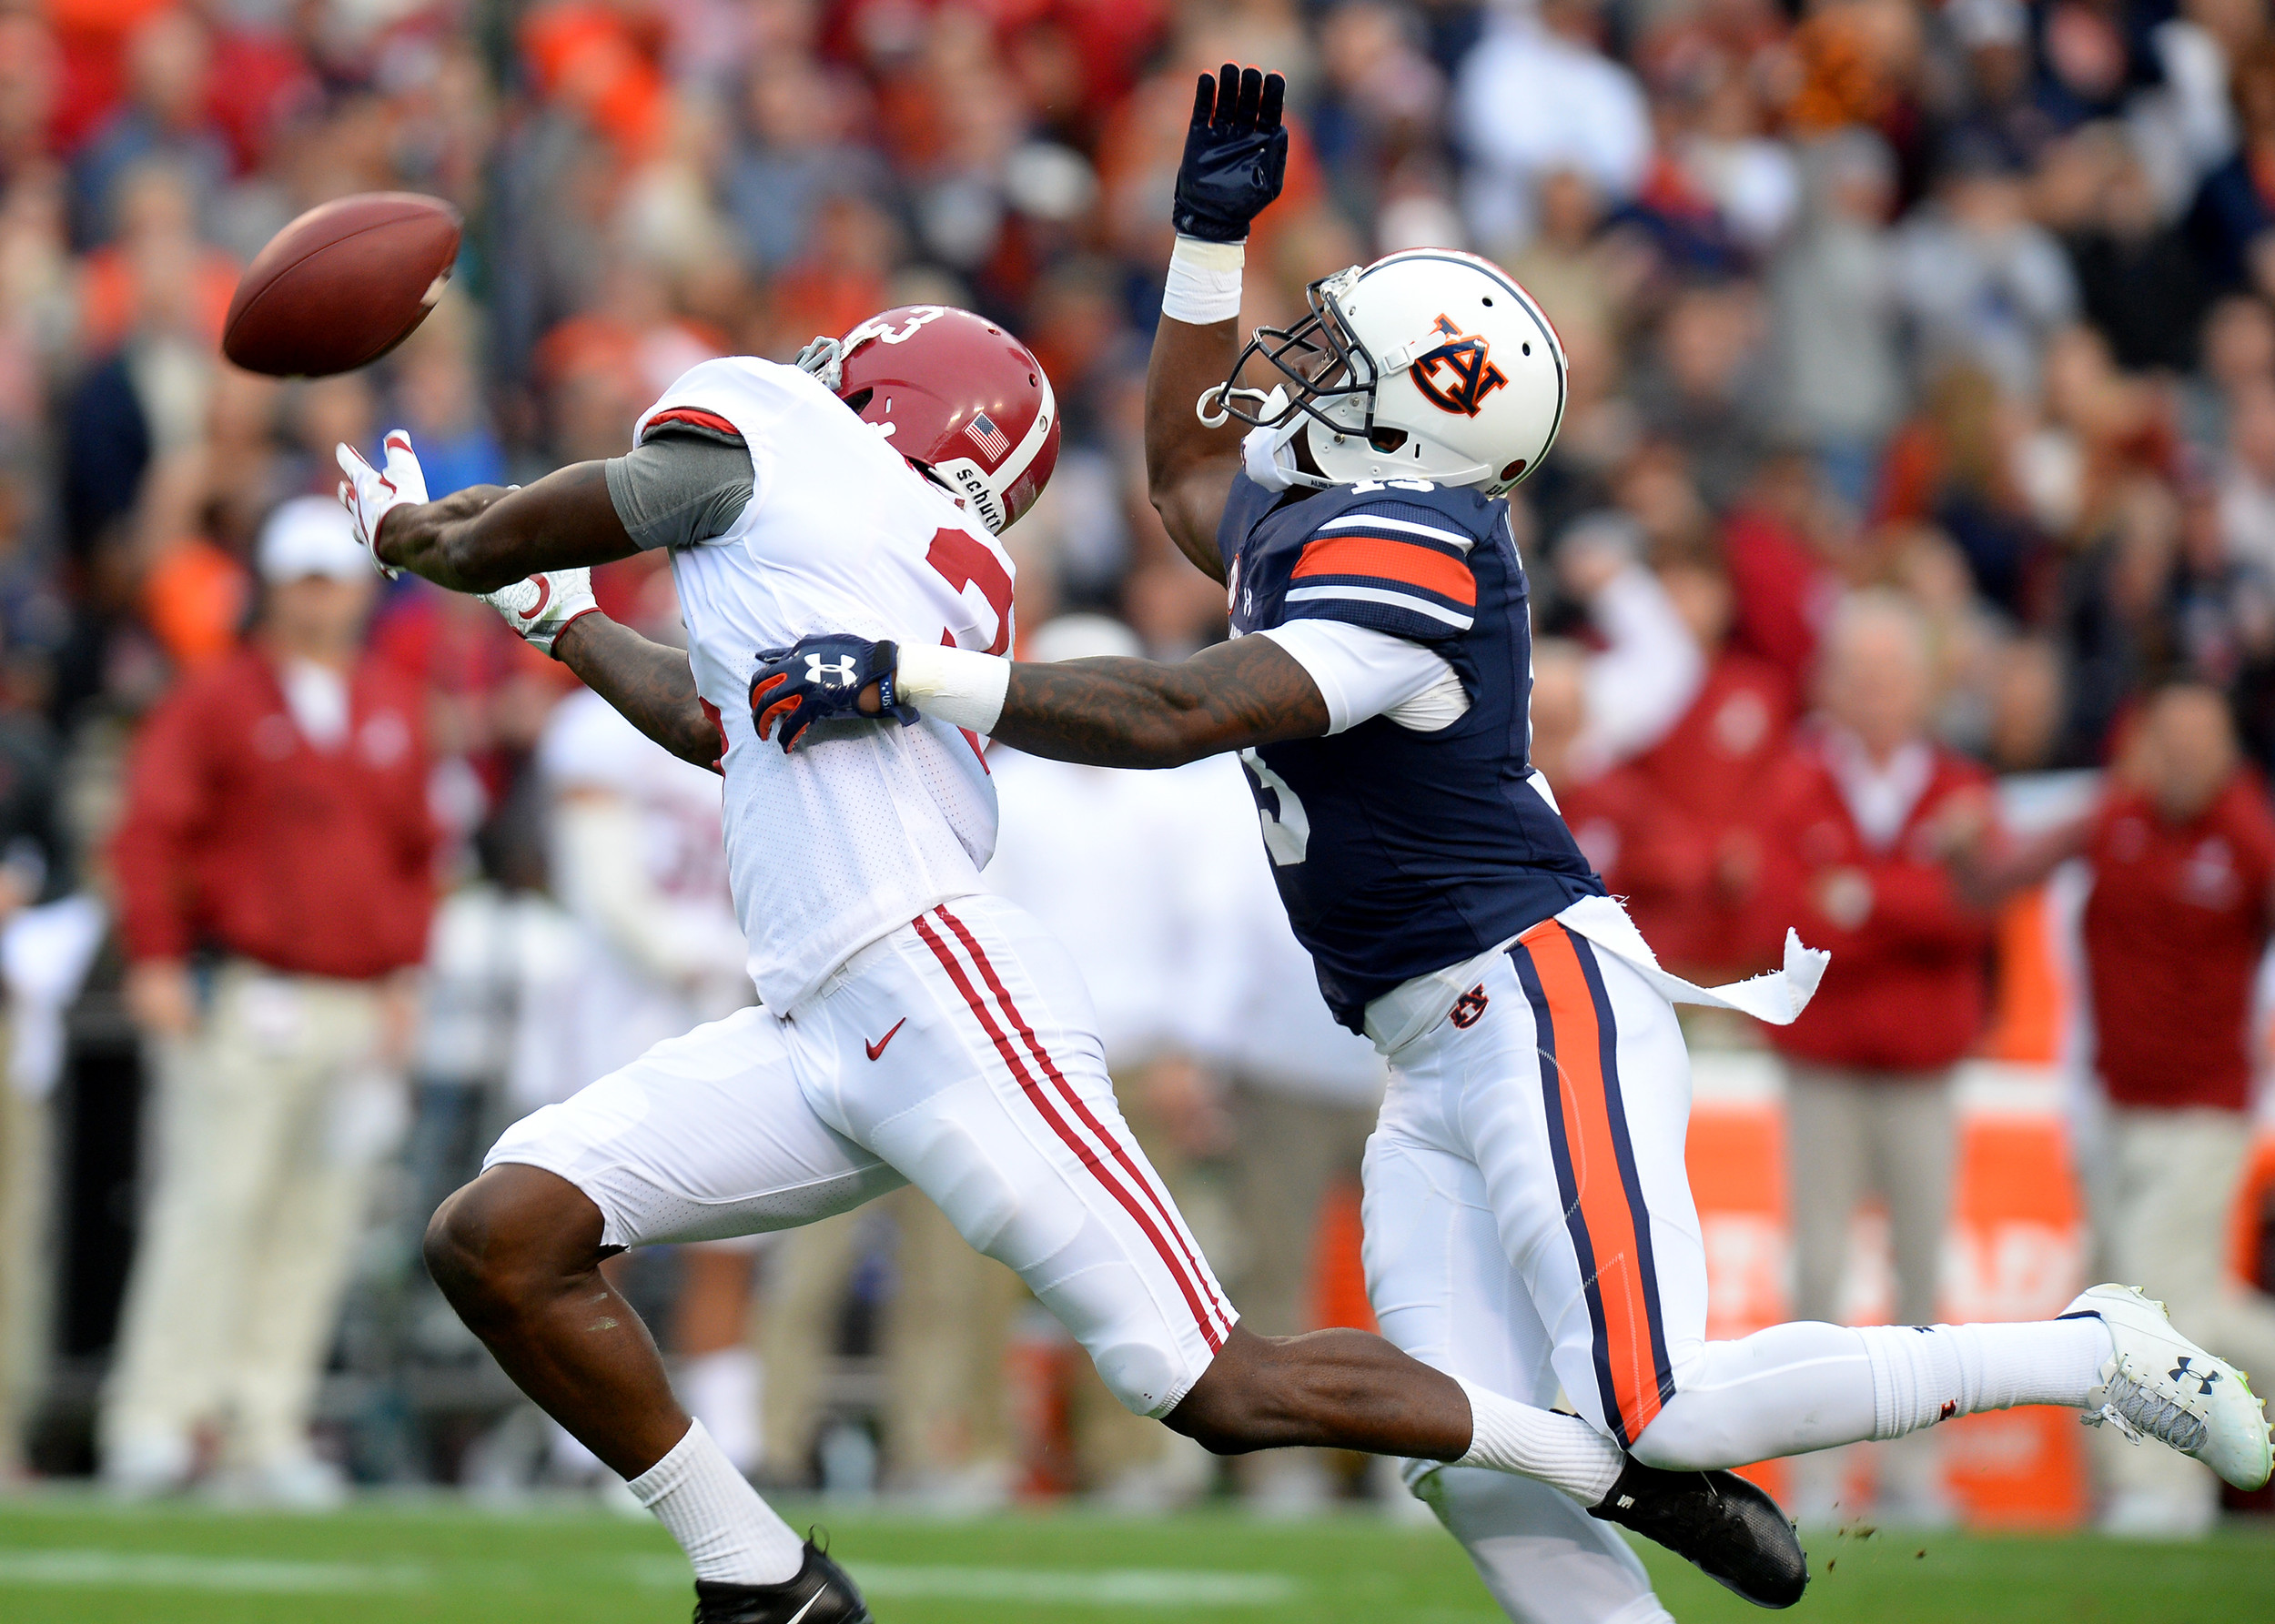 From the first half of the NCAA football game between the Alabama Crimson Tide and the Auburn Tigers on Nov. 25, 2017, at Jordan-Hare Stadium in Auburn, Ala. (Photo by Jeff Johnsey)